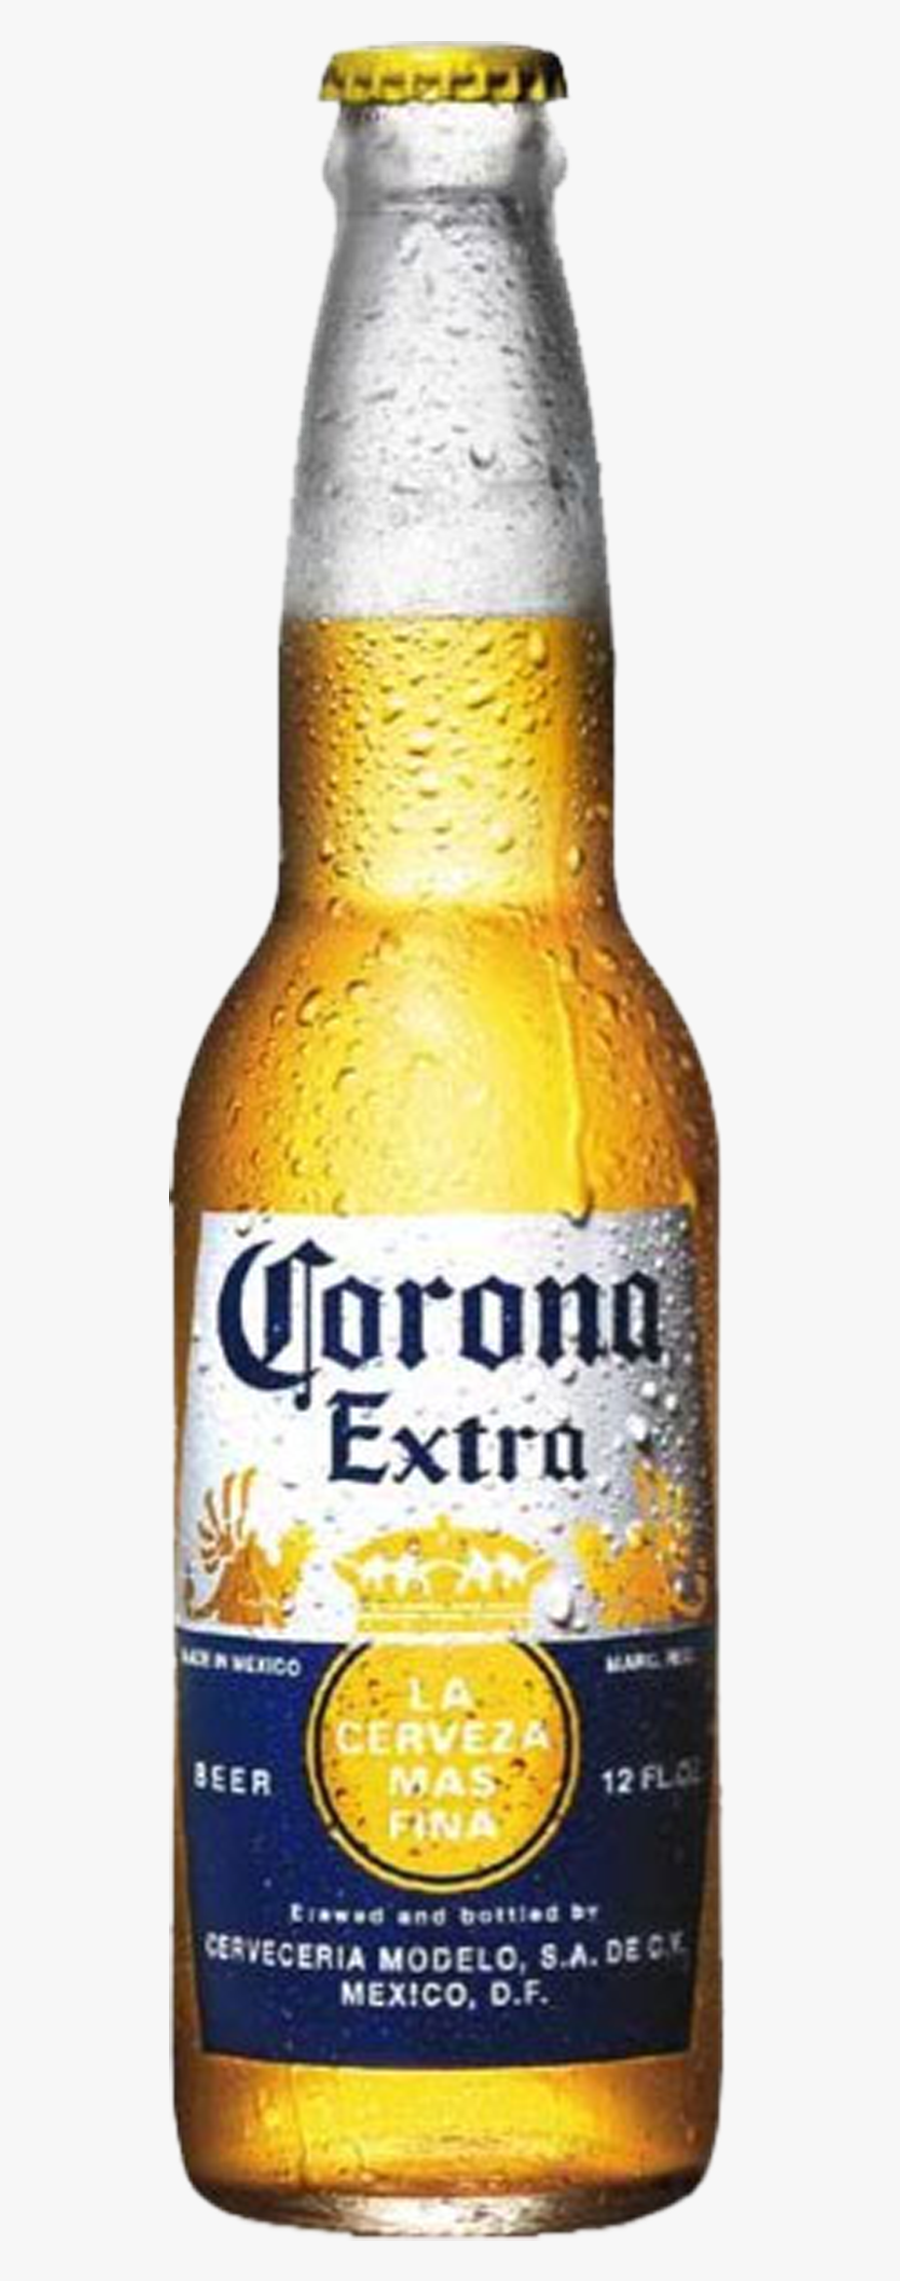 Corona Beer Price In Nepal, Transparent Clipart